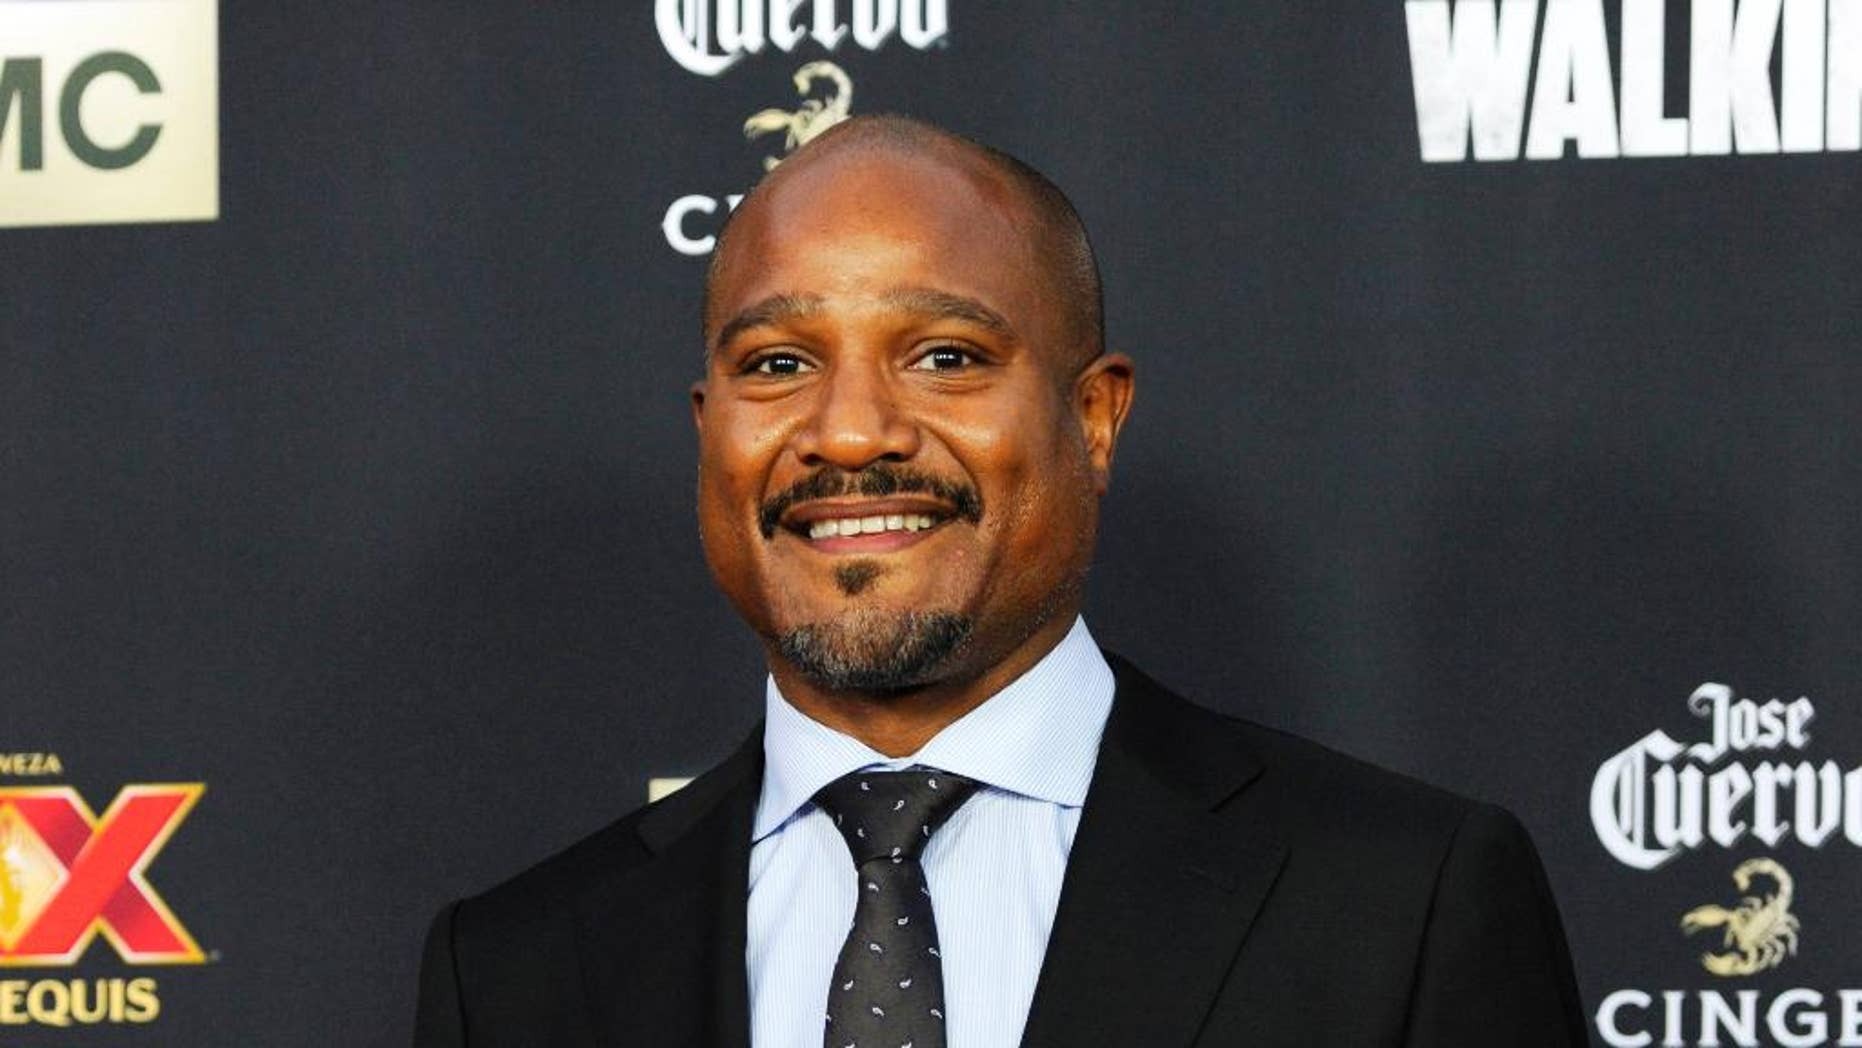 """FILE - In this Oct. 2, 2014 file photo, Seth Gilliam, a cast member in """"The Walking Dead,"""" poses at a special screening for season five of the show in Universal City, Calif. Gilliam is facing drunken driving and drug charges after police say he was clocked on radar at 107 mph while passing a police officer who was running radar on a Georgia highway. Police say 46-year-old Gilliam was stopped shortly after 2 a.m. Sunday, May 3, 2015, on Georgia 74 in the Peachtree City area, not far from the set where much of the TV show is filmed in nearby Senoia. (Photo by Chris Pizzello/Invision/AP, File)"""